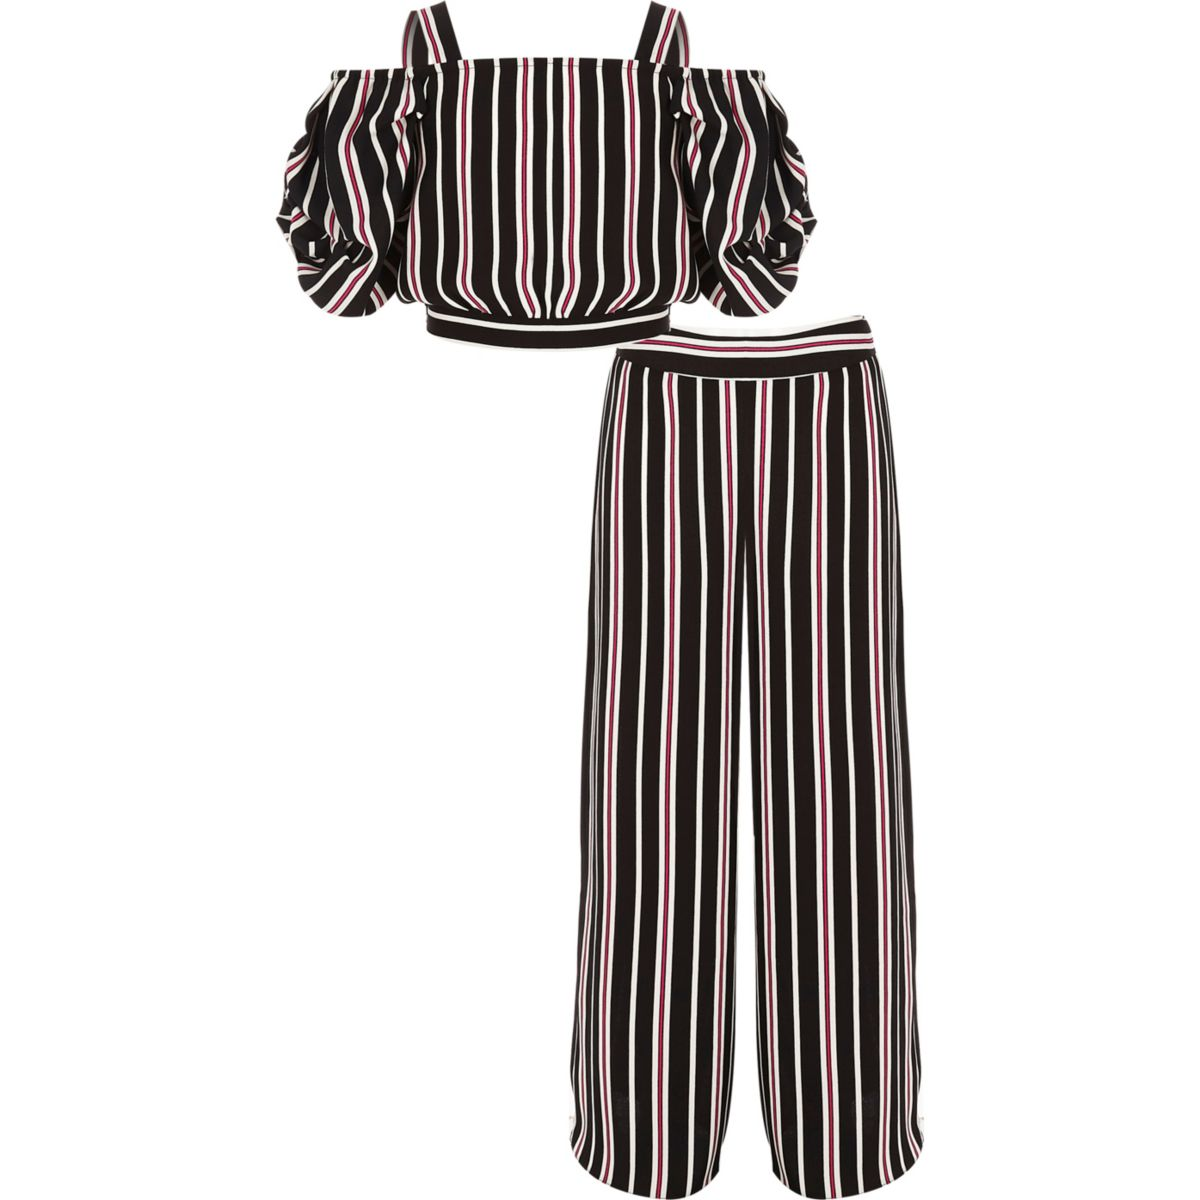 Girls stripe top and wide leg pants outfit